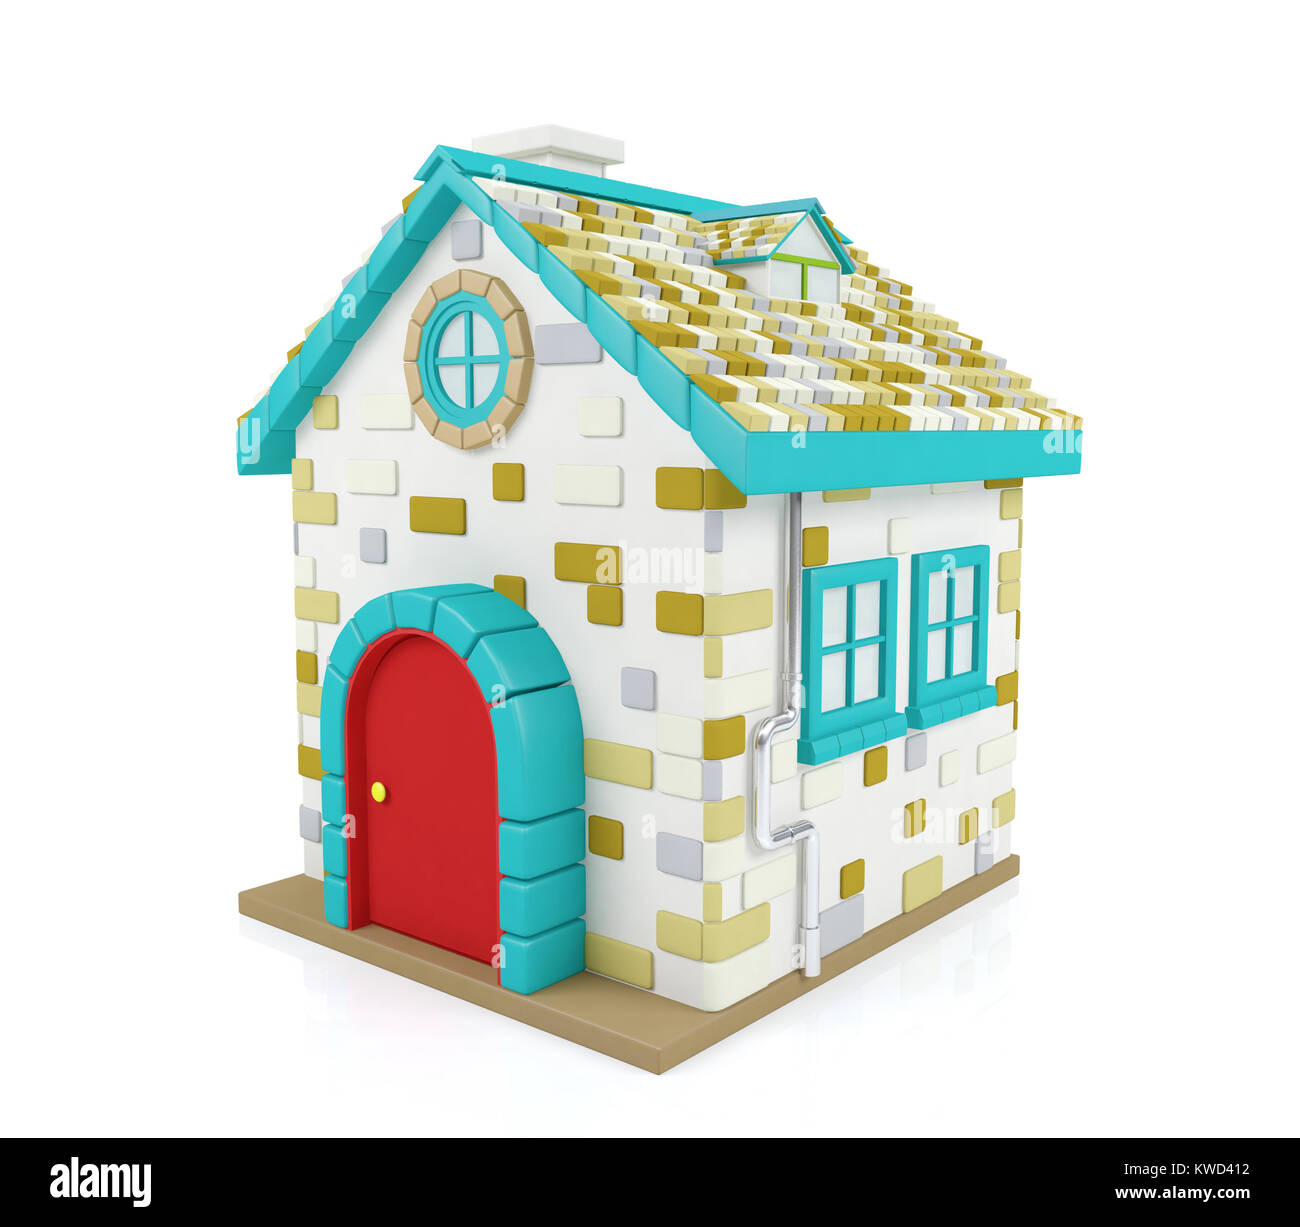 Doll House Stock Photos Doll House Stock Images Alamy